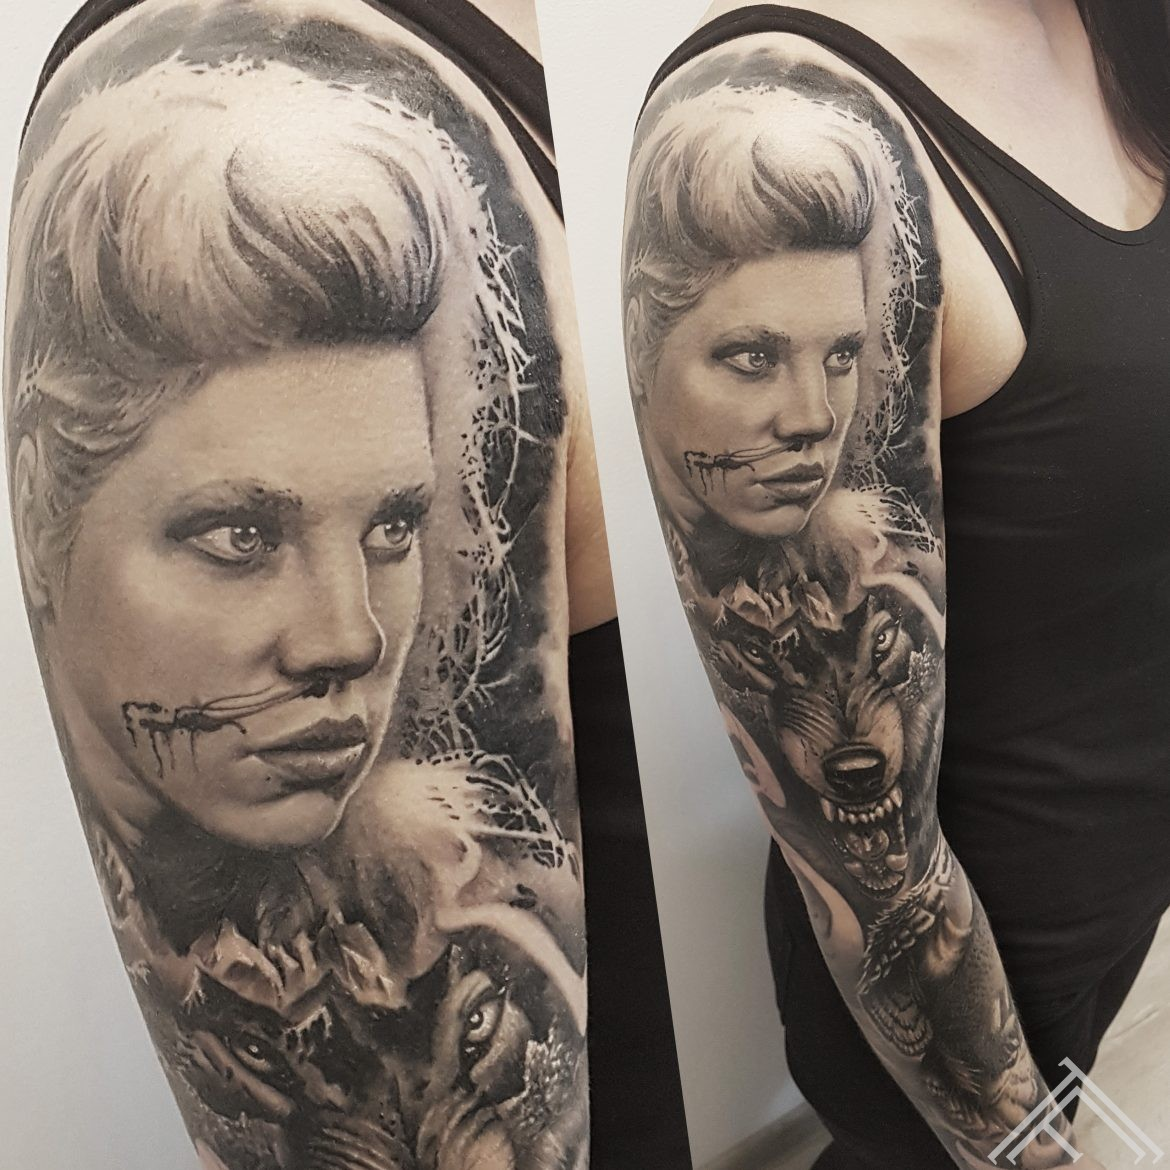 martinssilins-tattoo-tattoofrequency-fullsleeve-combine